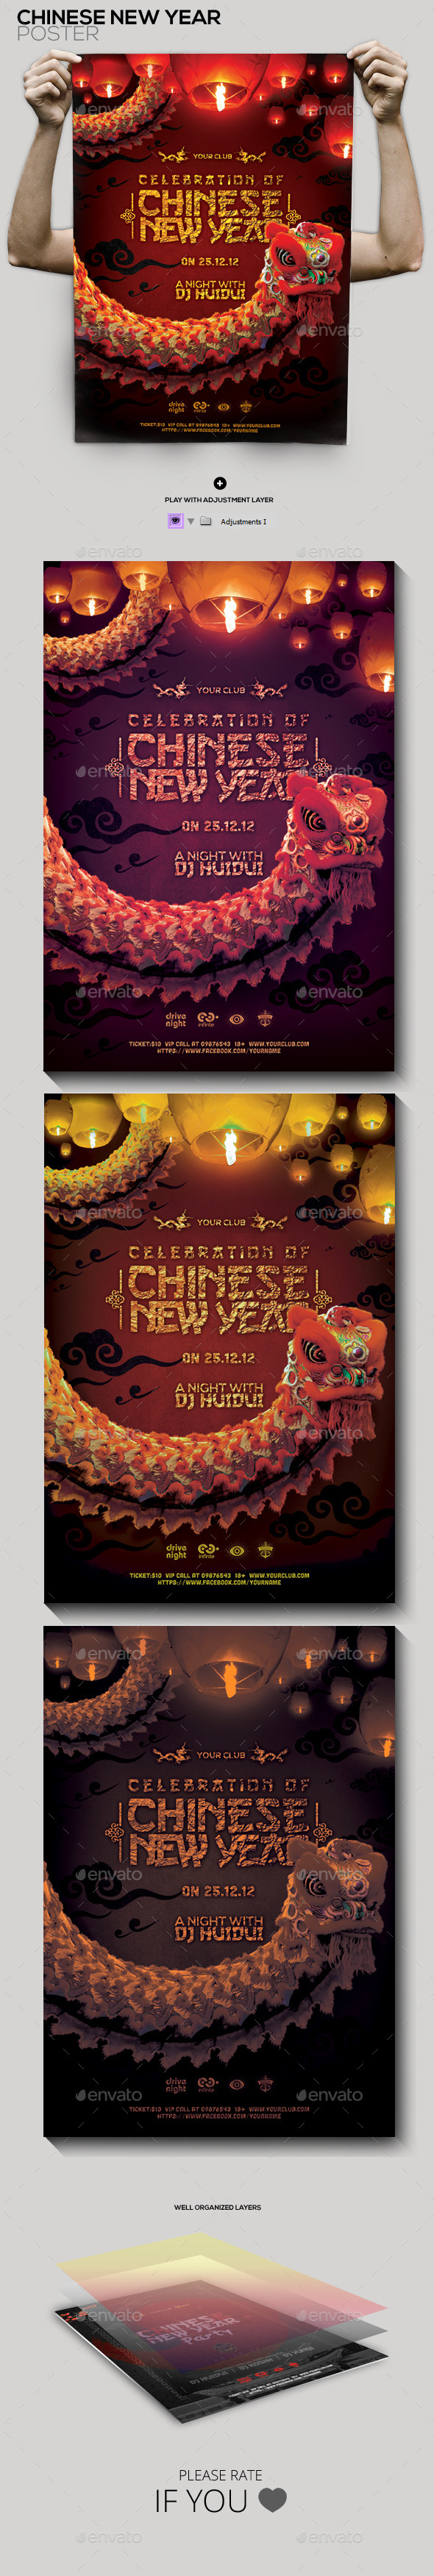 Chinese New Year Celebration Flyer/Poster - Holidays Events